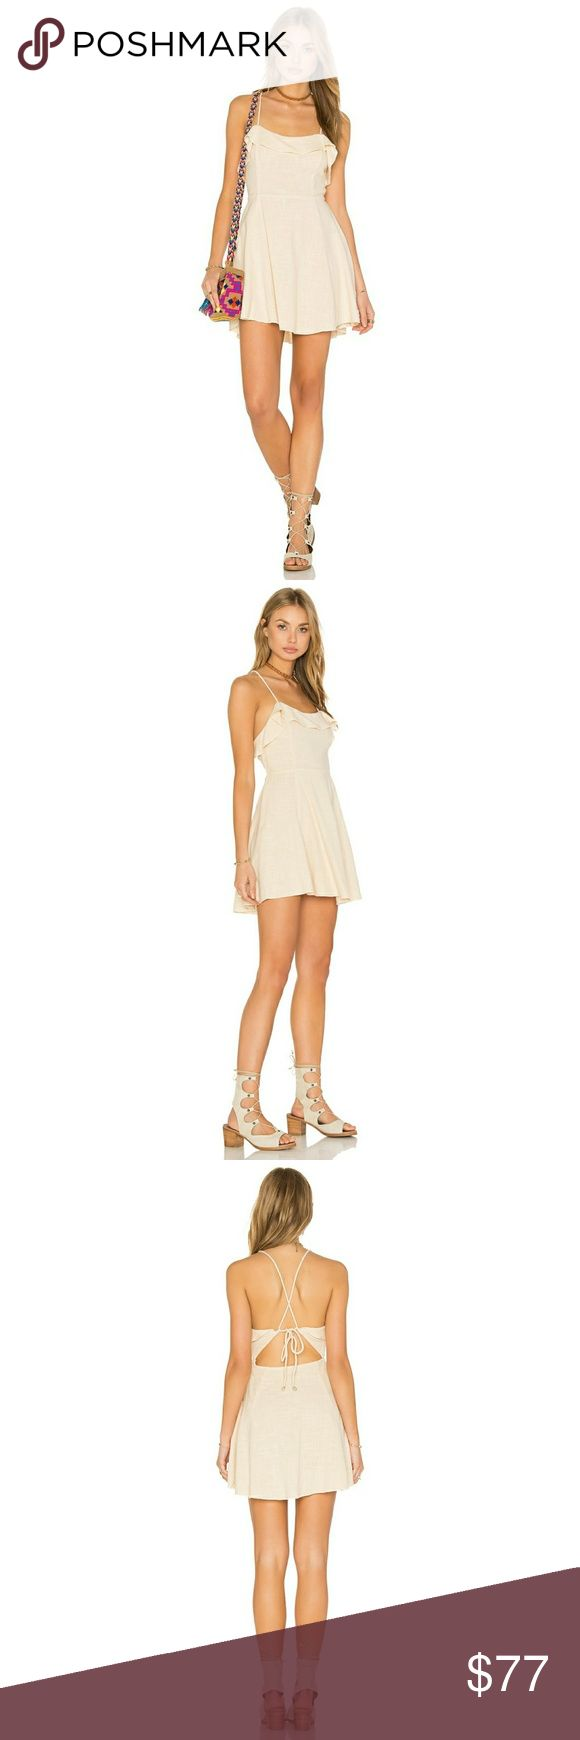 """Free People 100% Cotton Gauze Beige Mini Dress M Free People  More Than Mini Dress  New with tags!  Size Medium   100% cotton linen weave material. Unlined. Has button closures and also ties in the back. The back ties have little sea shells attached to the ends 🐚 very lightweight & breathable dress. Beige color.    Measurements: Bust: 19"""" Waist: 15"""" Length: approx. 35""""  Save 30% on any bundle of two or more items plus FREE Shipping on all bundles! Check out my closet - most of the items I…"""